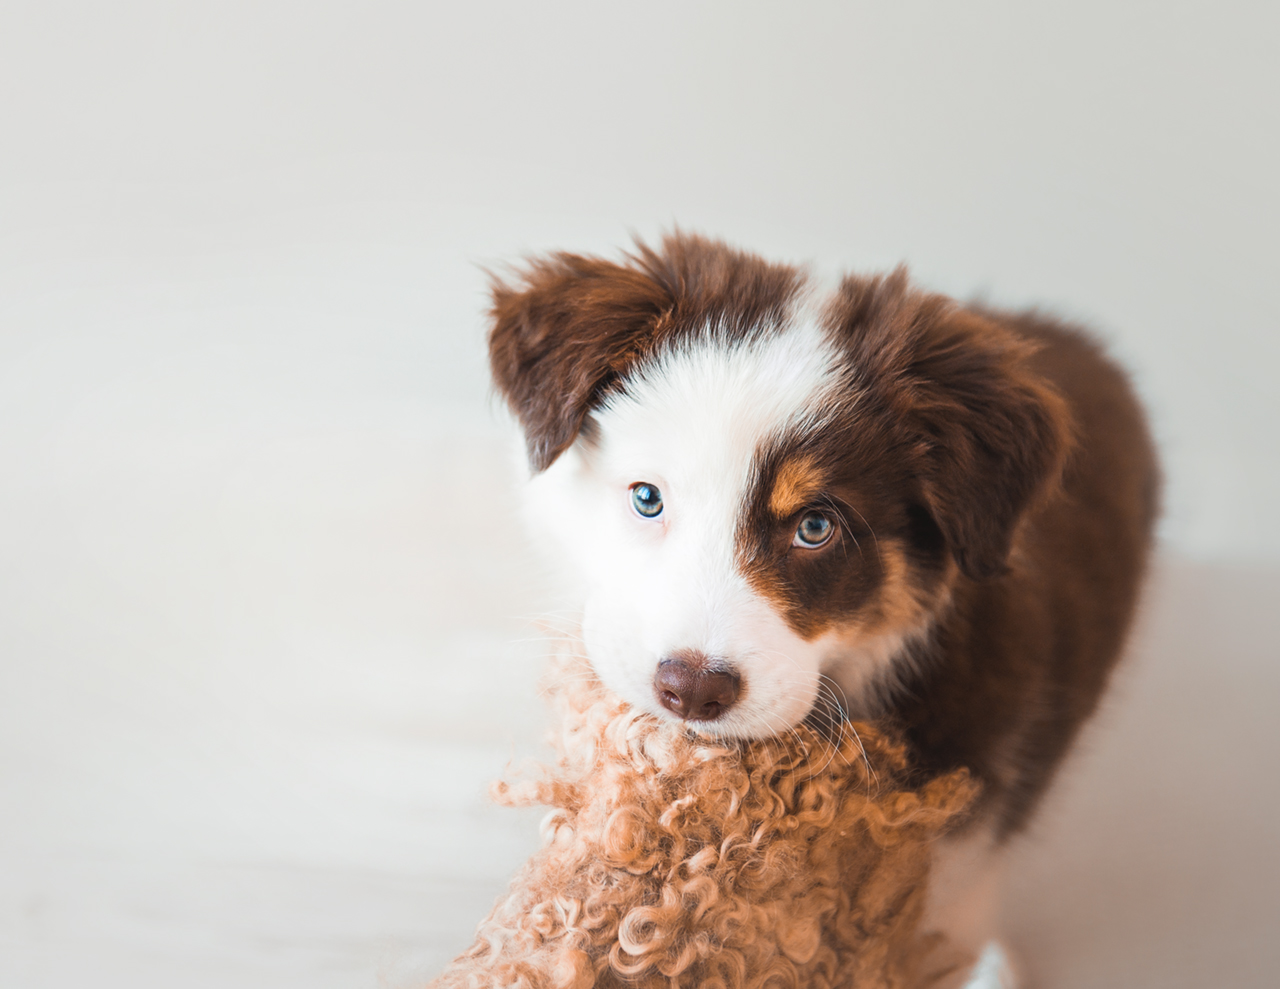 Border Collie, Puppy photography, Brisbane pet photography, Dog photography Brisbane, Puppy newborn session, Puppy newborn photography, Sonja Griffioen - Newborn & Puppy Photography